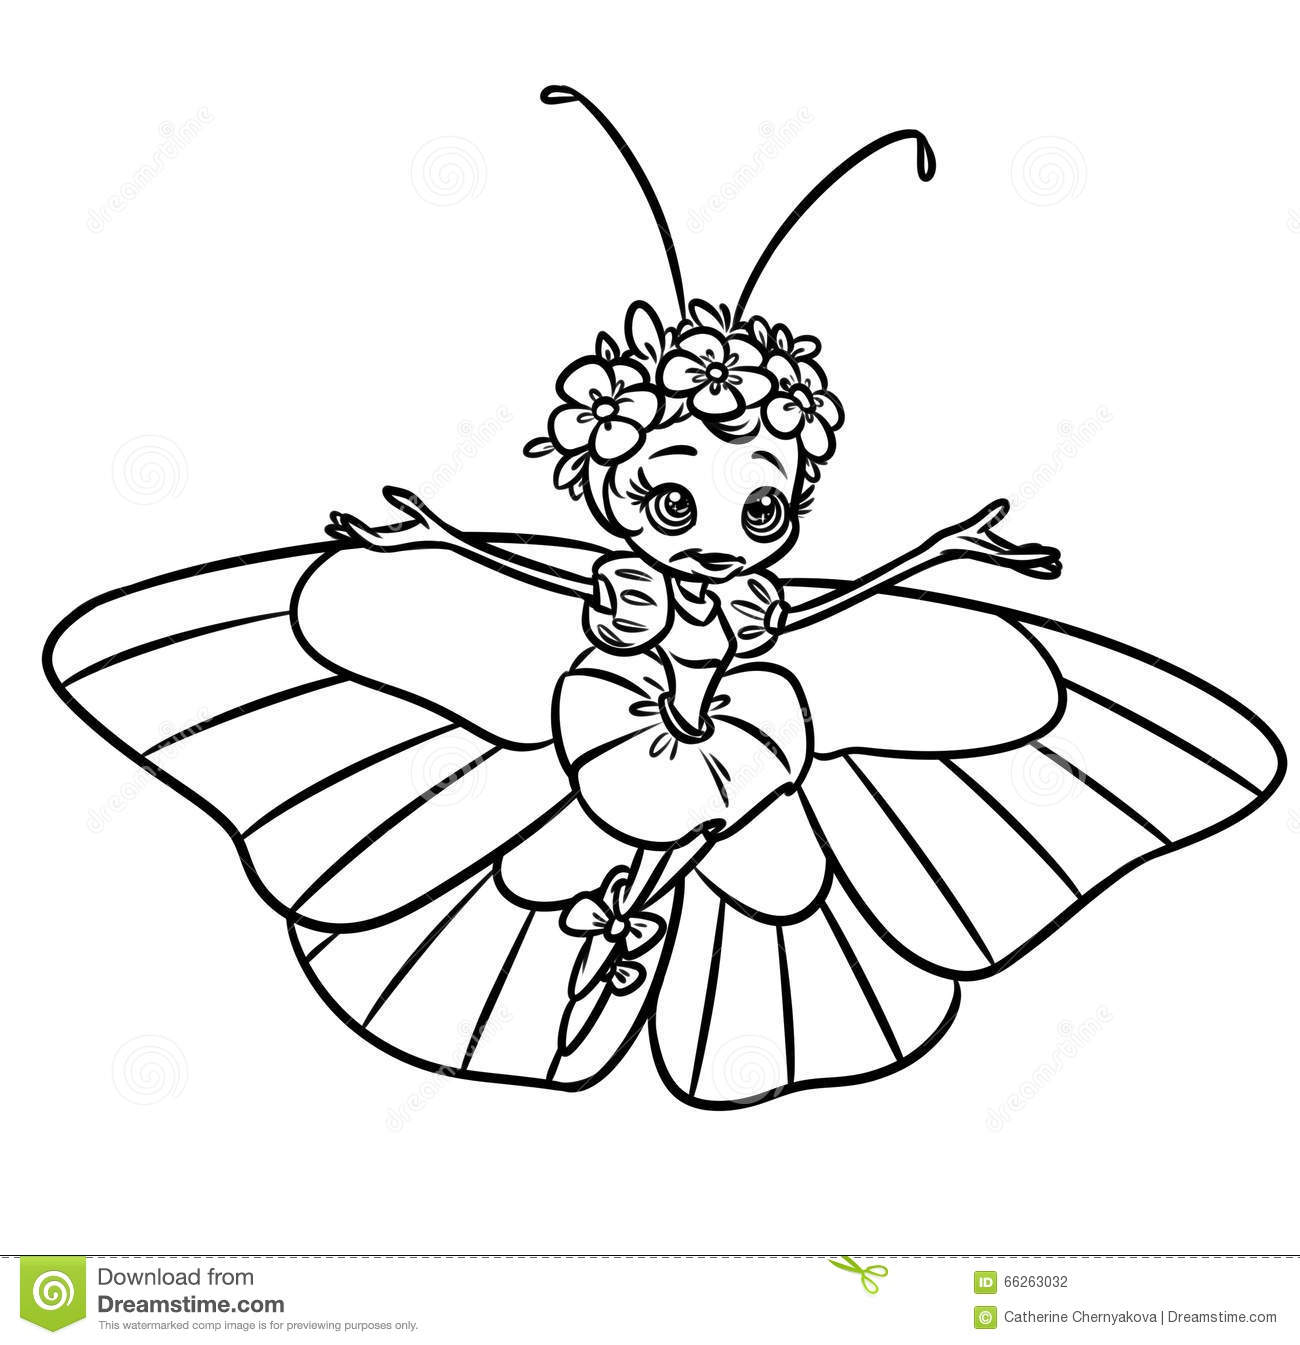 Printable Of Little Old Lady Coloring Pages